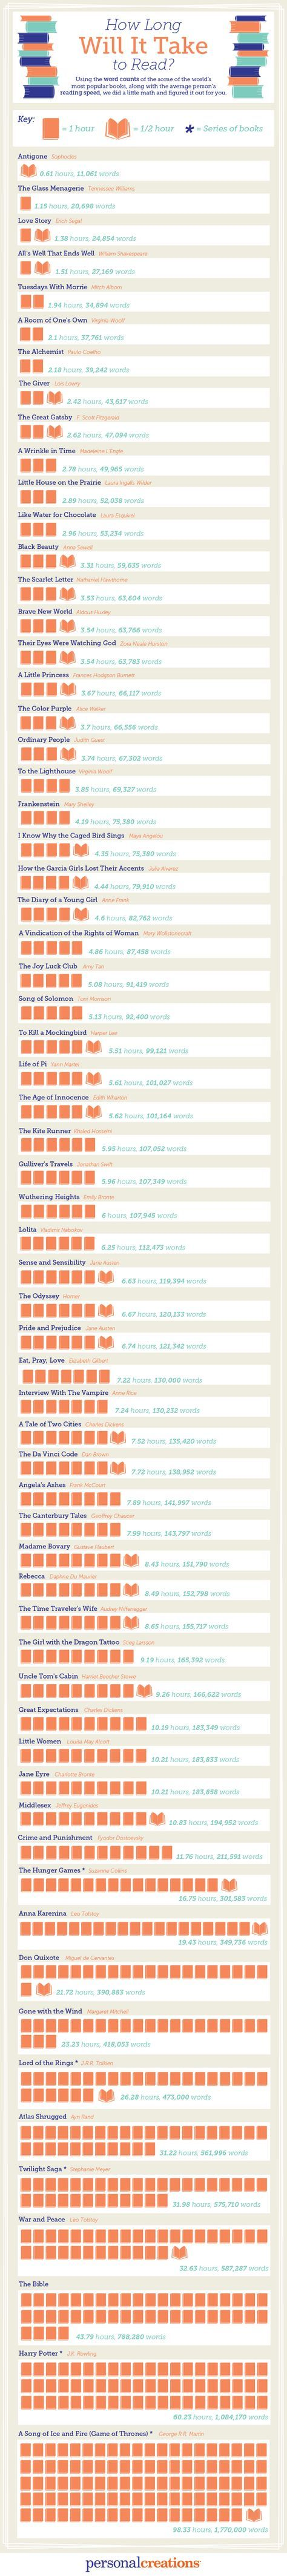 We're all busy people. So we took some of the most popular books of all time and estimated how long it would take the average reader to finish them.  Don't set your watch with this guide – use it as a rough gauge to inform your next reading session. Enjoy the infographic!